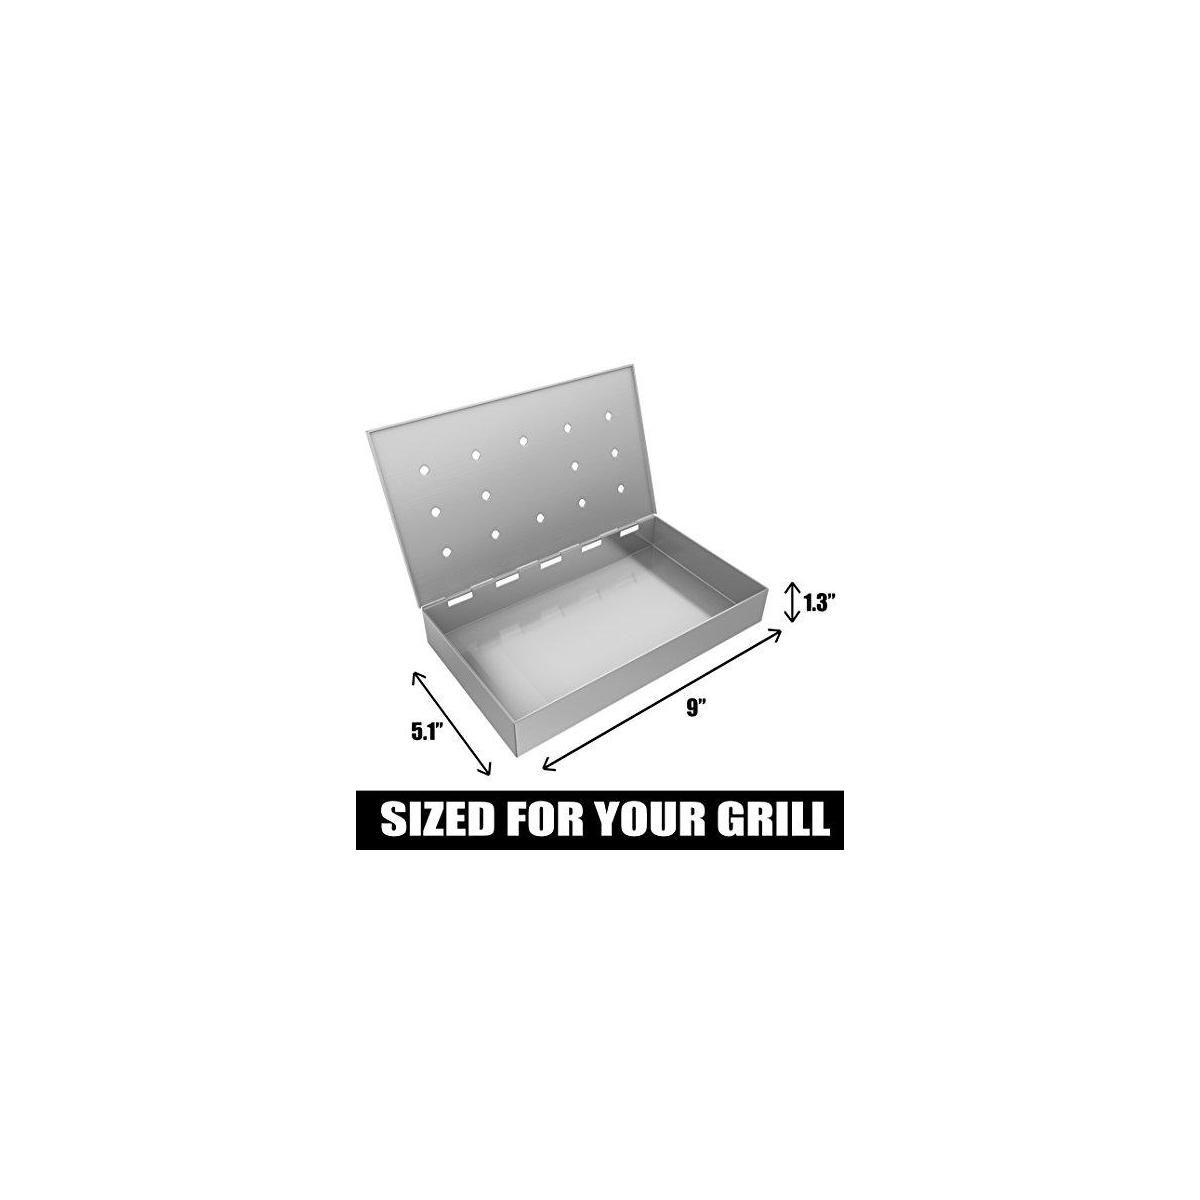 Burger Press + Smoker Box Maximum Wood Chip Capacity - 25% Thicker Stainless Steel Won't WARP - Charcoal & Gas Grill BBQ Meat Smoking Hinged Lid - Best Grilling Accessories Barbecue Utensils for Dad